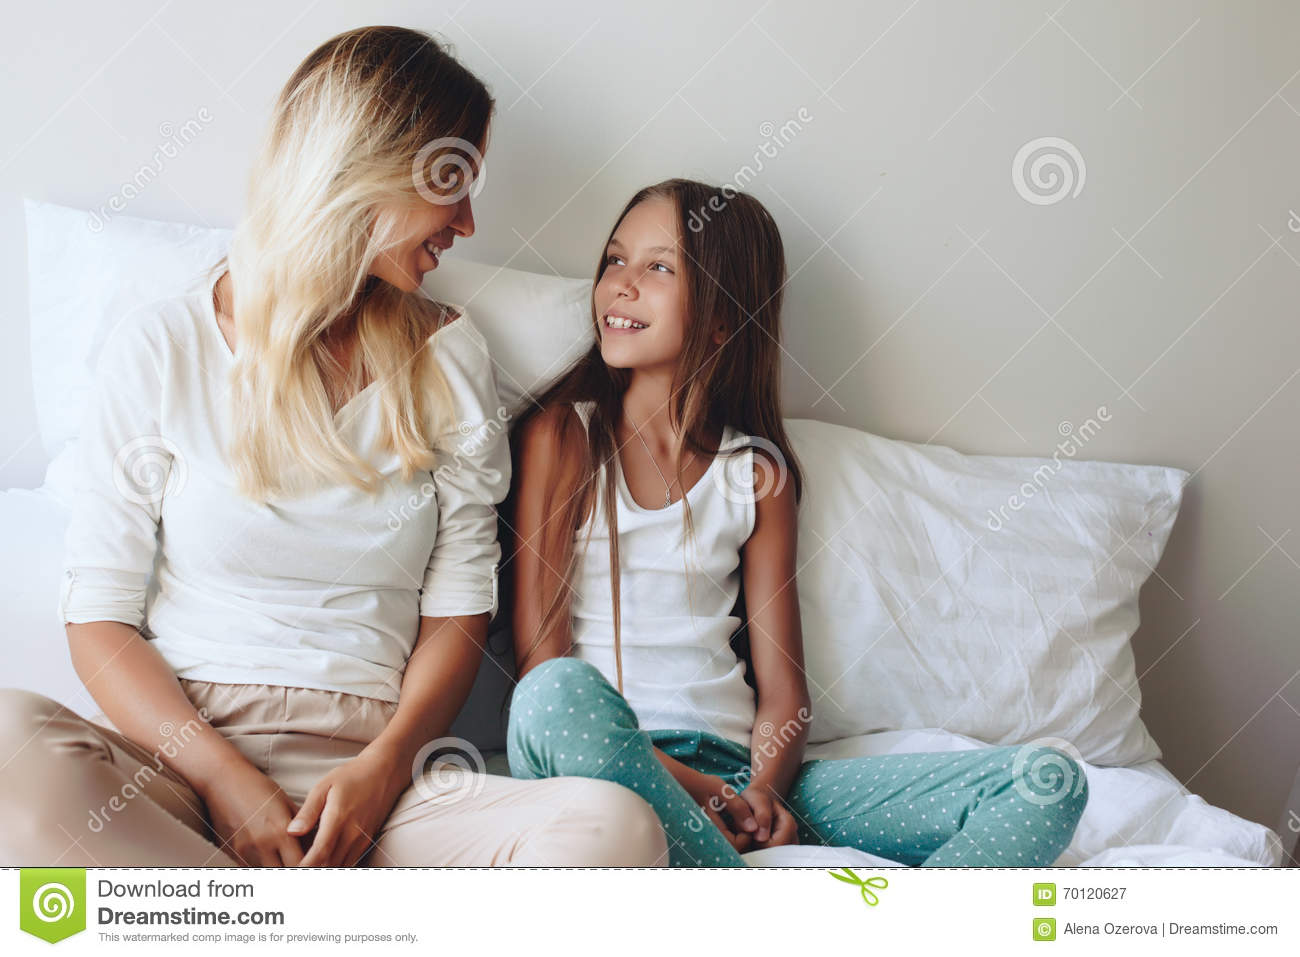 Mom with her tween daughter relaxing in bed positive feelings good